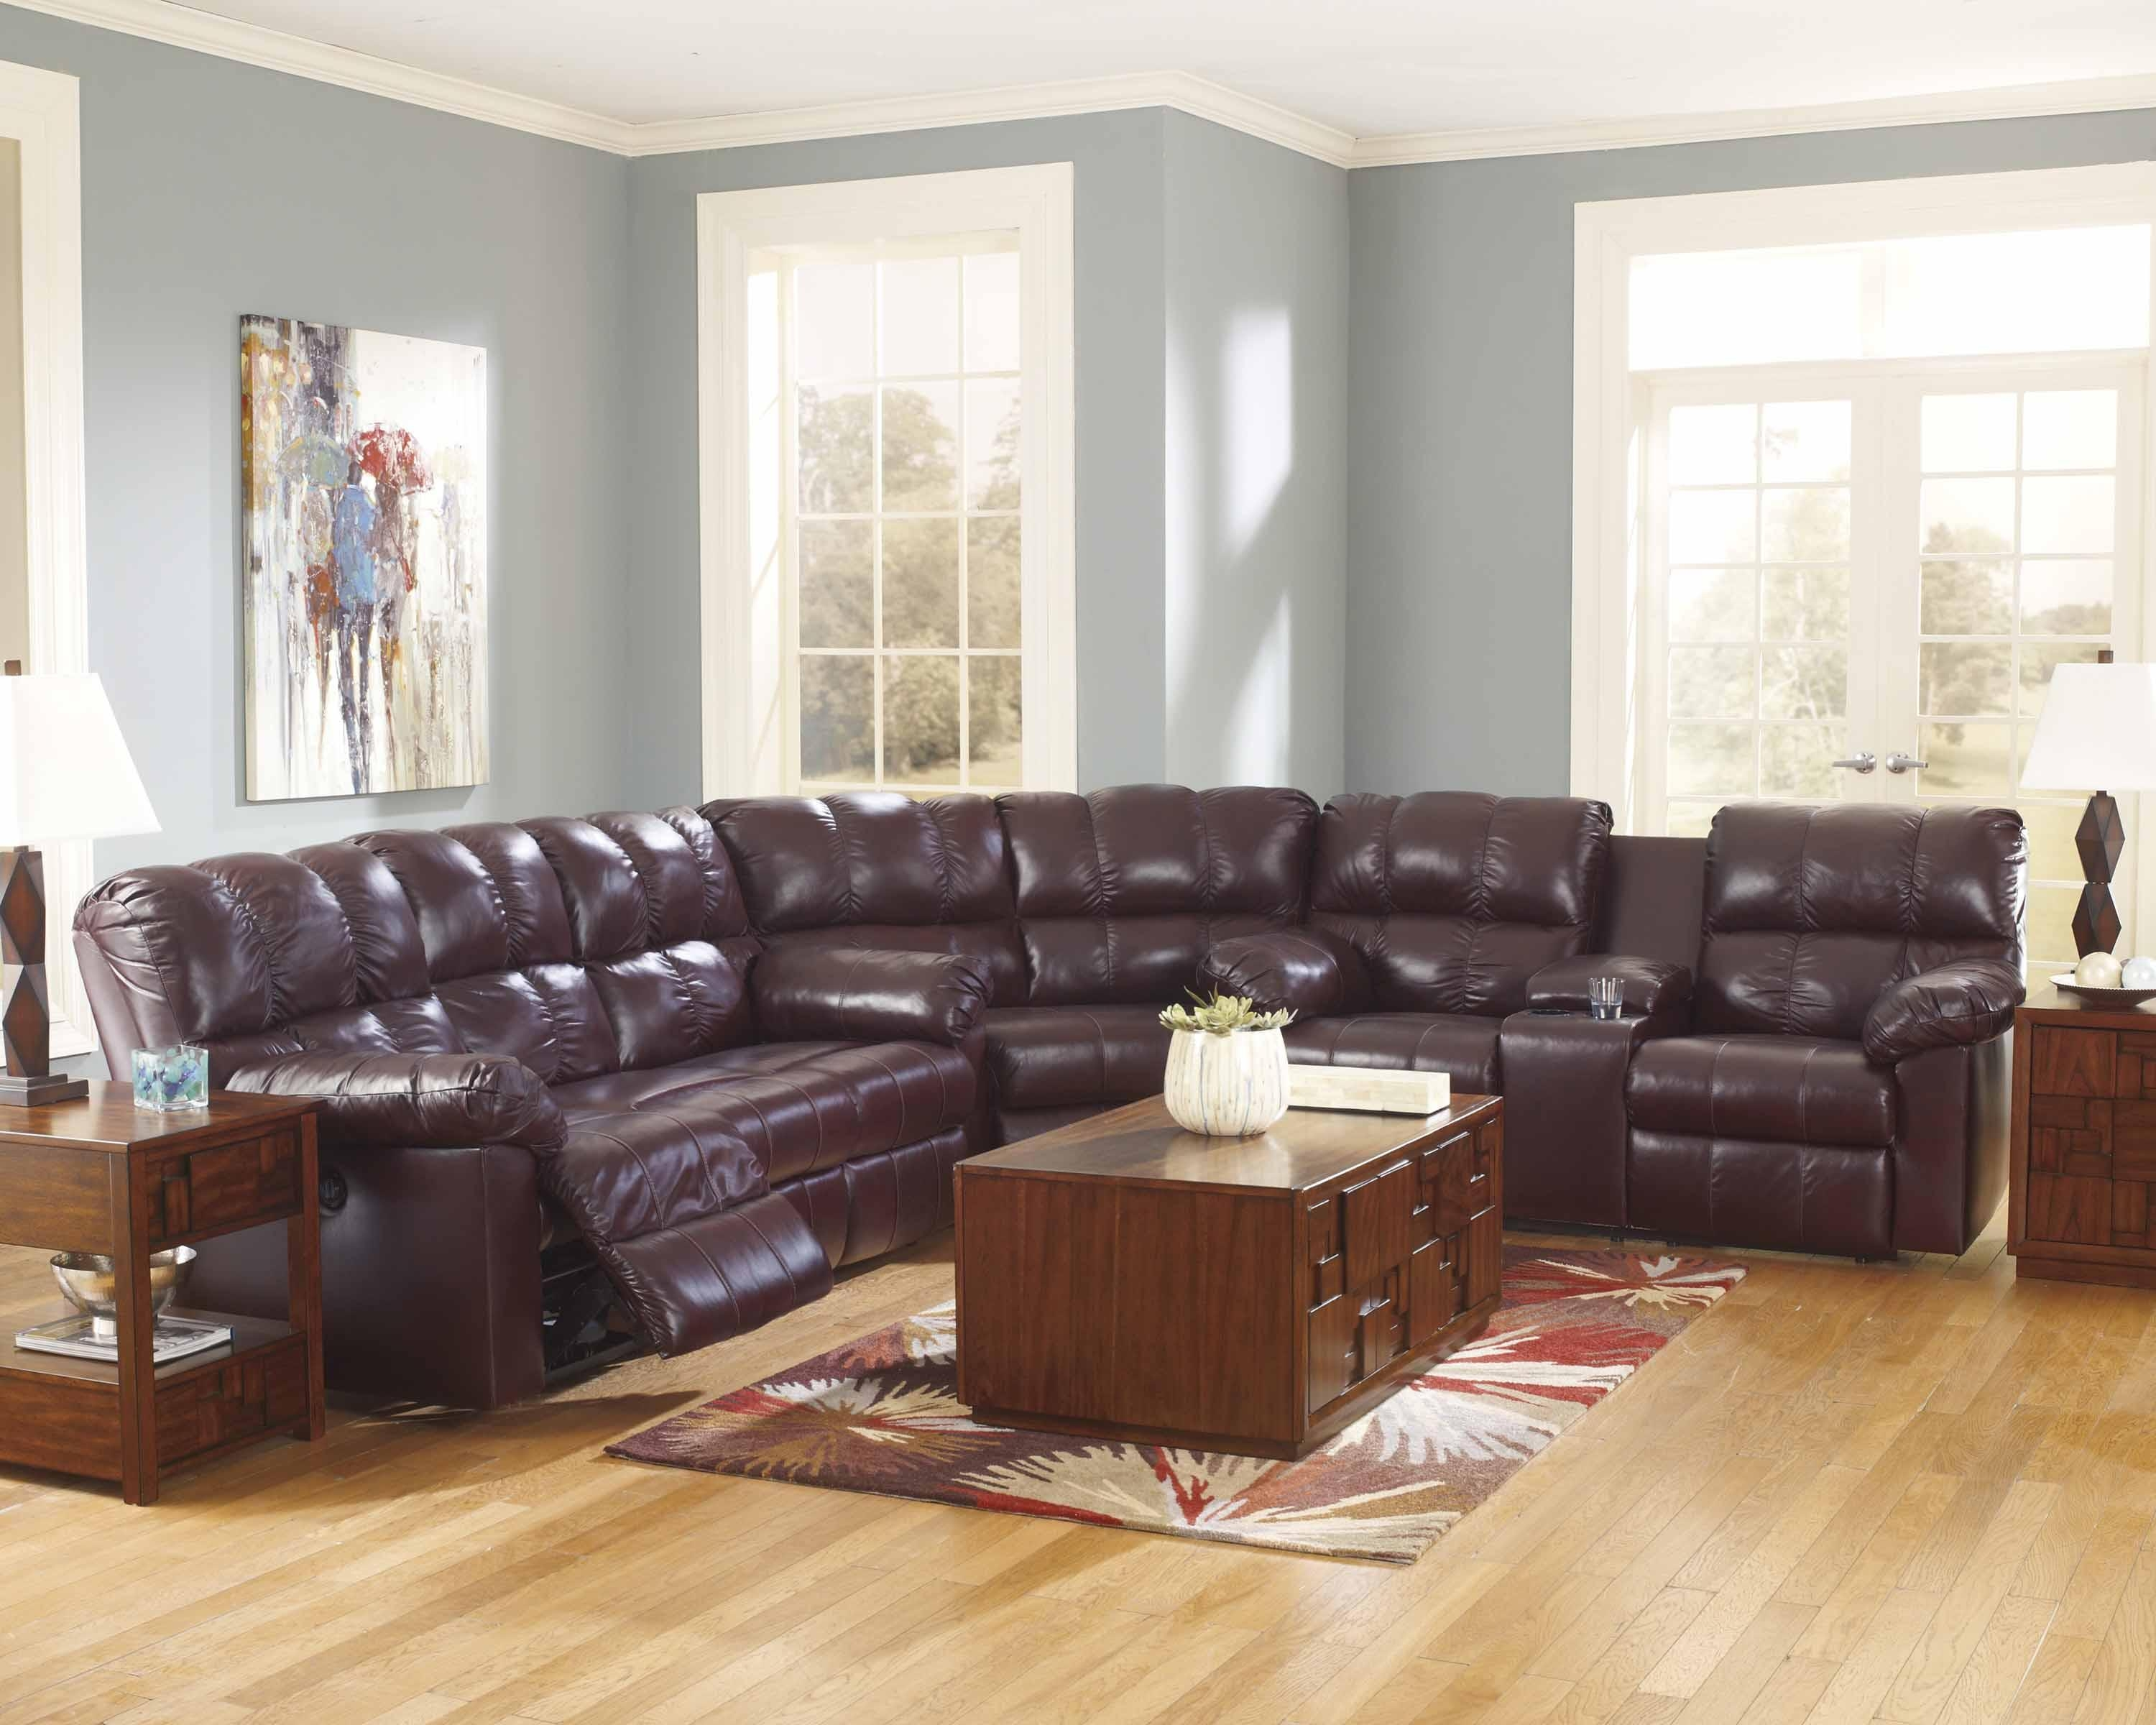 Kennard Power Reclining Sectional Sofa In Burgundy 290 Intended For Burgundy Sectional Sofas (View 12 of 20)